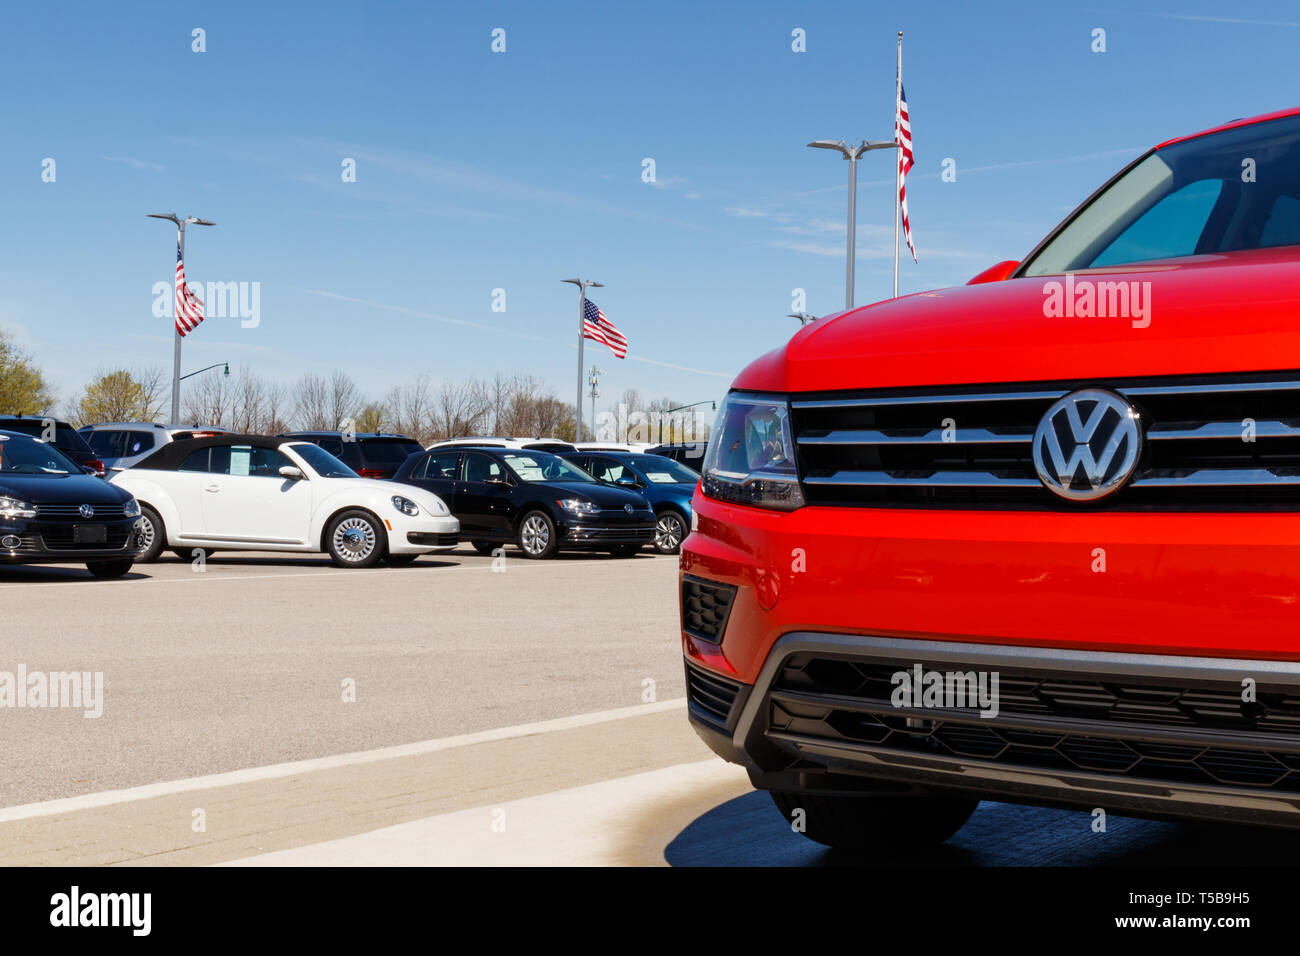 Noblesville - Circa April 2019: Volkswagen Cars and SUV Dealership. VW is Among the World's Largest Car Manufacturers I - Stock Image